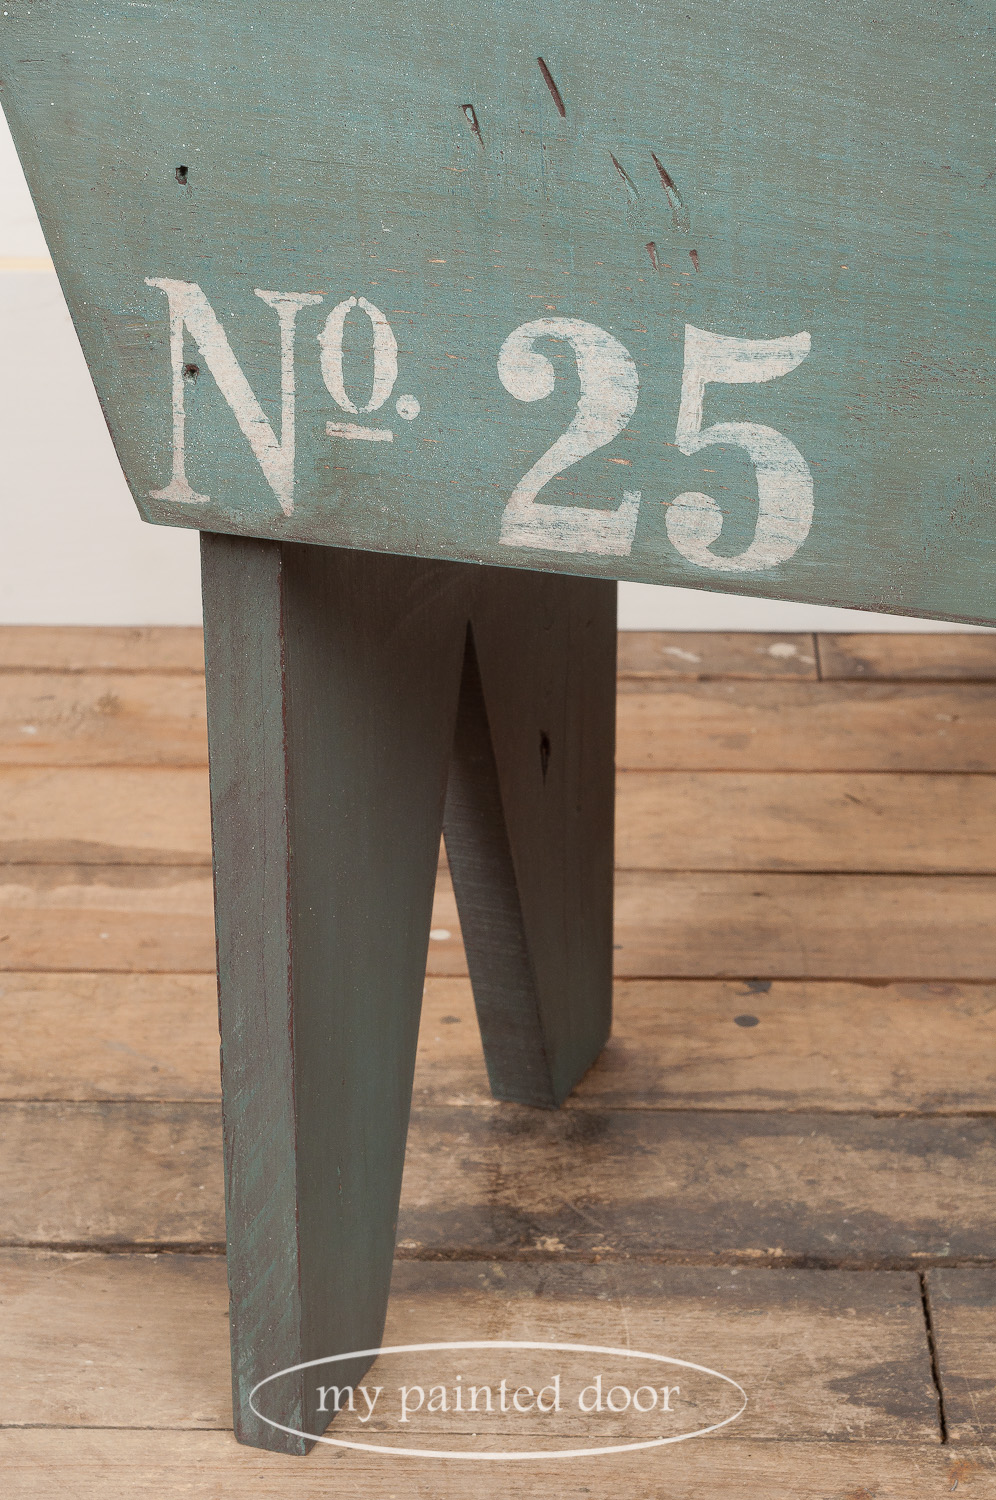 Learn how to paint furniture - Farmhouse style bench painted with Homestead House Milk Paint in the colour Quaker Blue and top coated with Fusion Mineral Paint Espresso Furniture Wax.